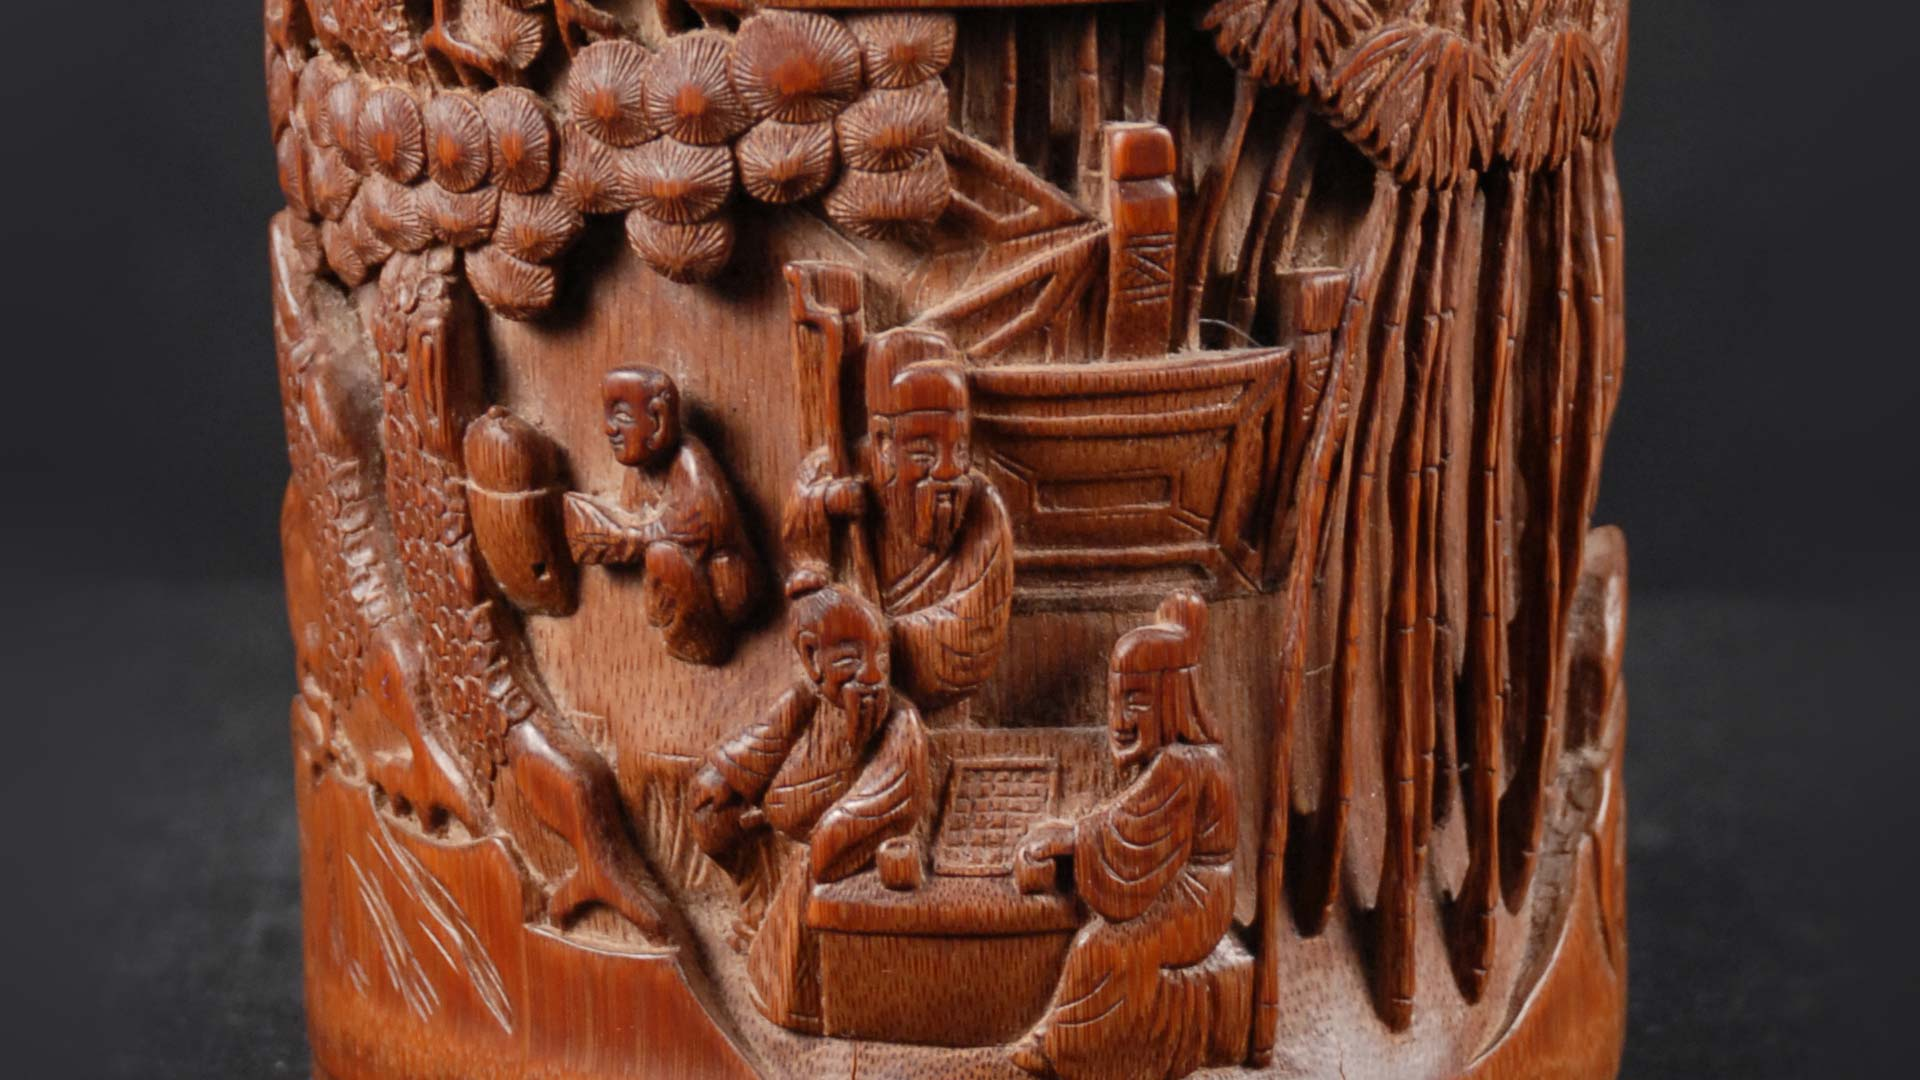 Brush Pot carving close-up